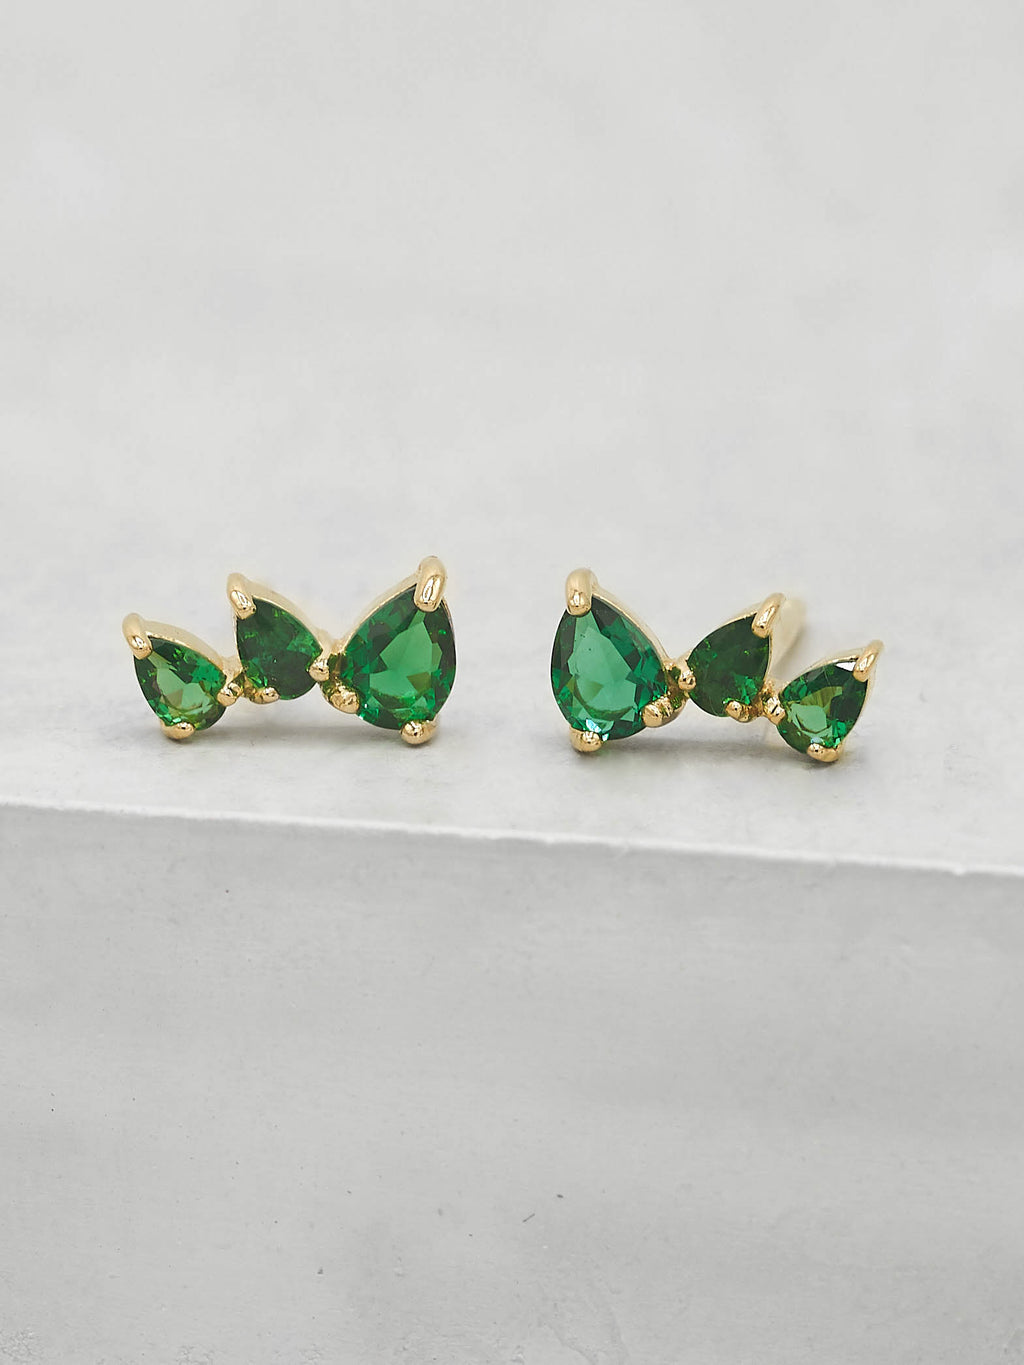 Gold Plated 3 Stones Green emerald  Pear Shape Cubic Zirconia CZ  Stud Earrings by The Faint Hearted jewelry